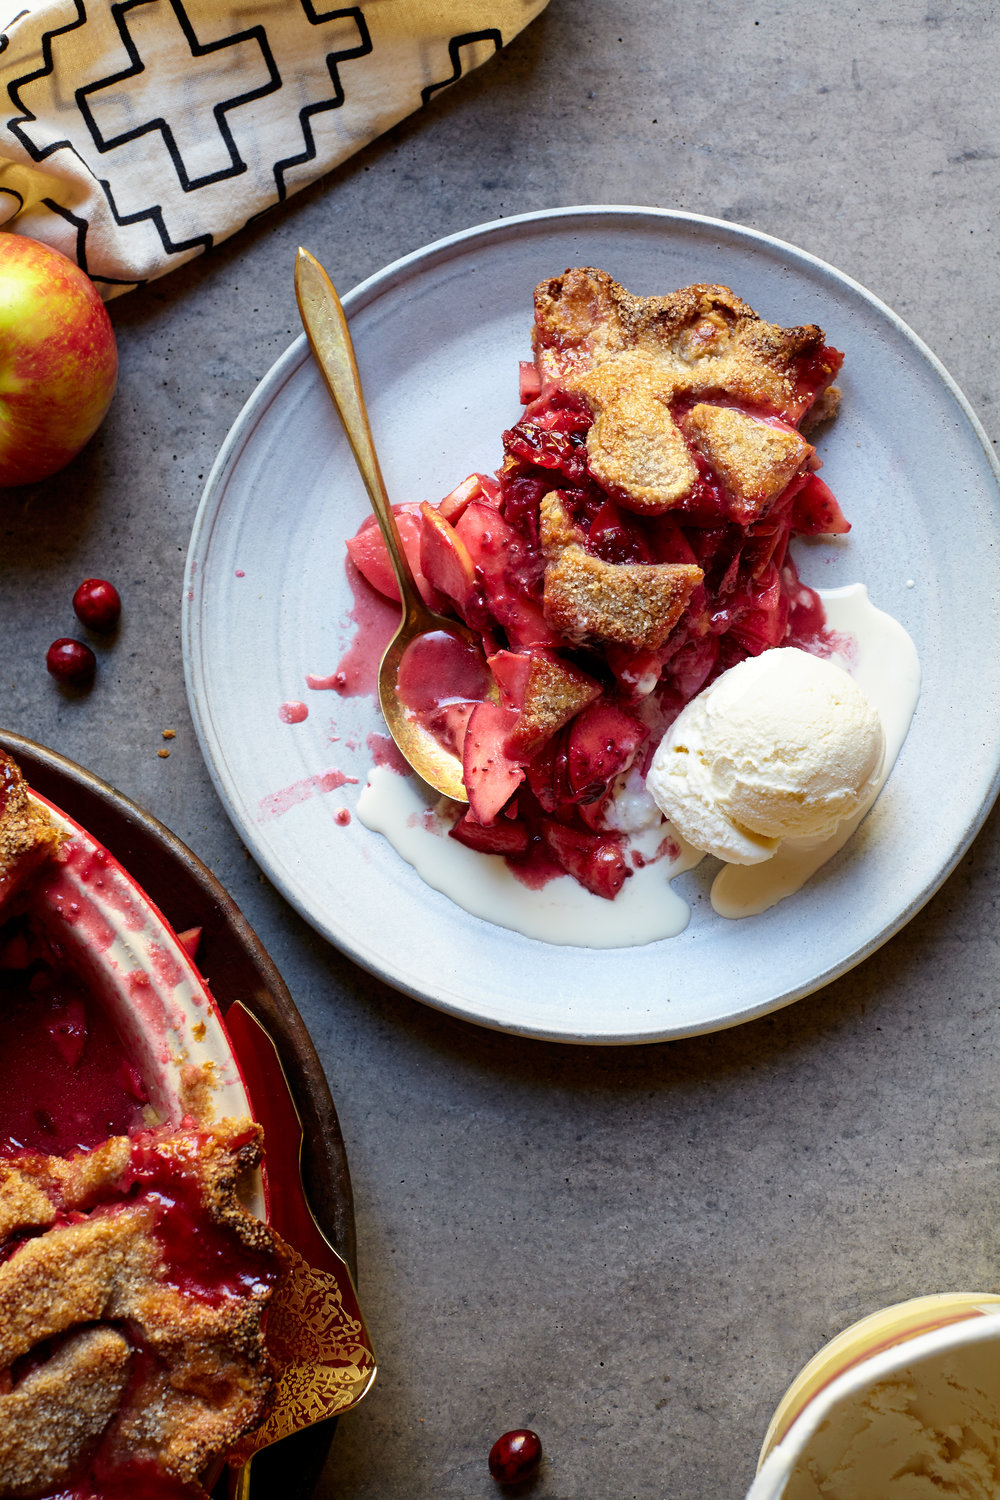 CRANBERRY CHIA APPLE PIE WITH AVOCADO OIL CRUST